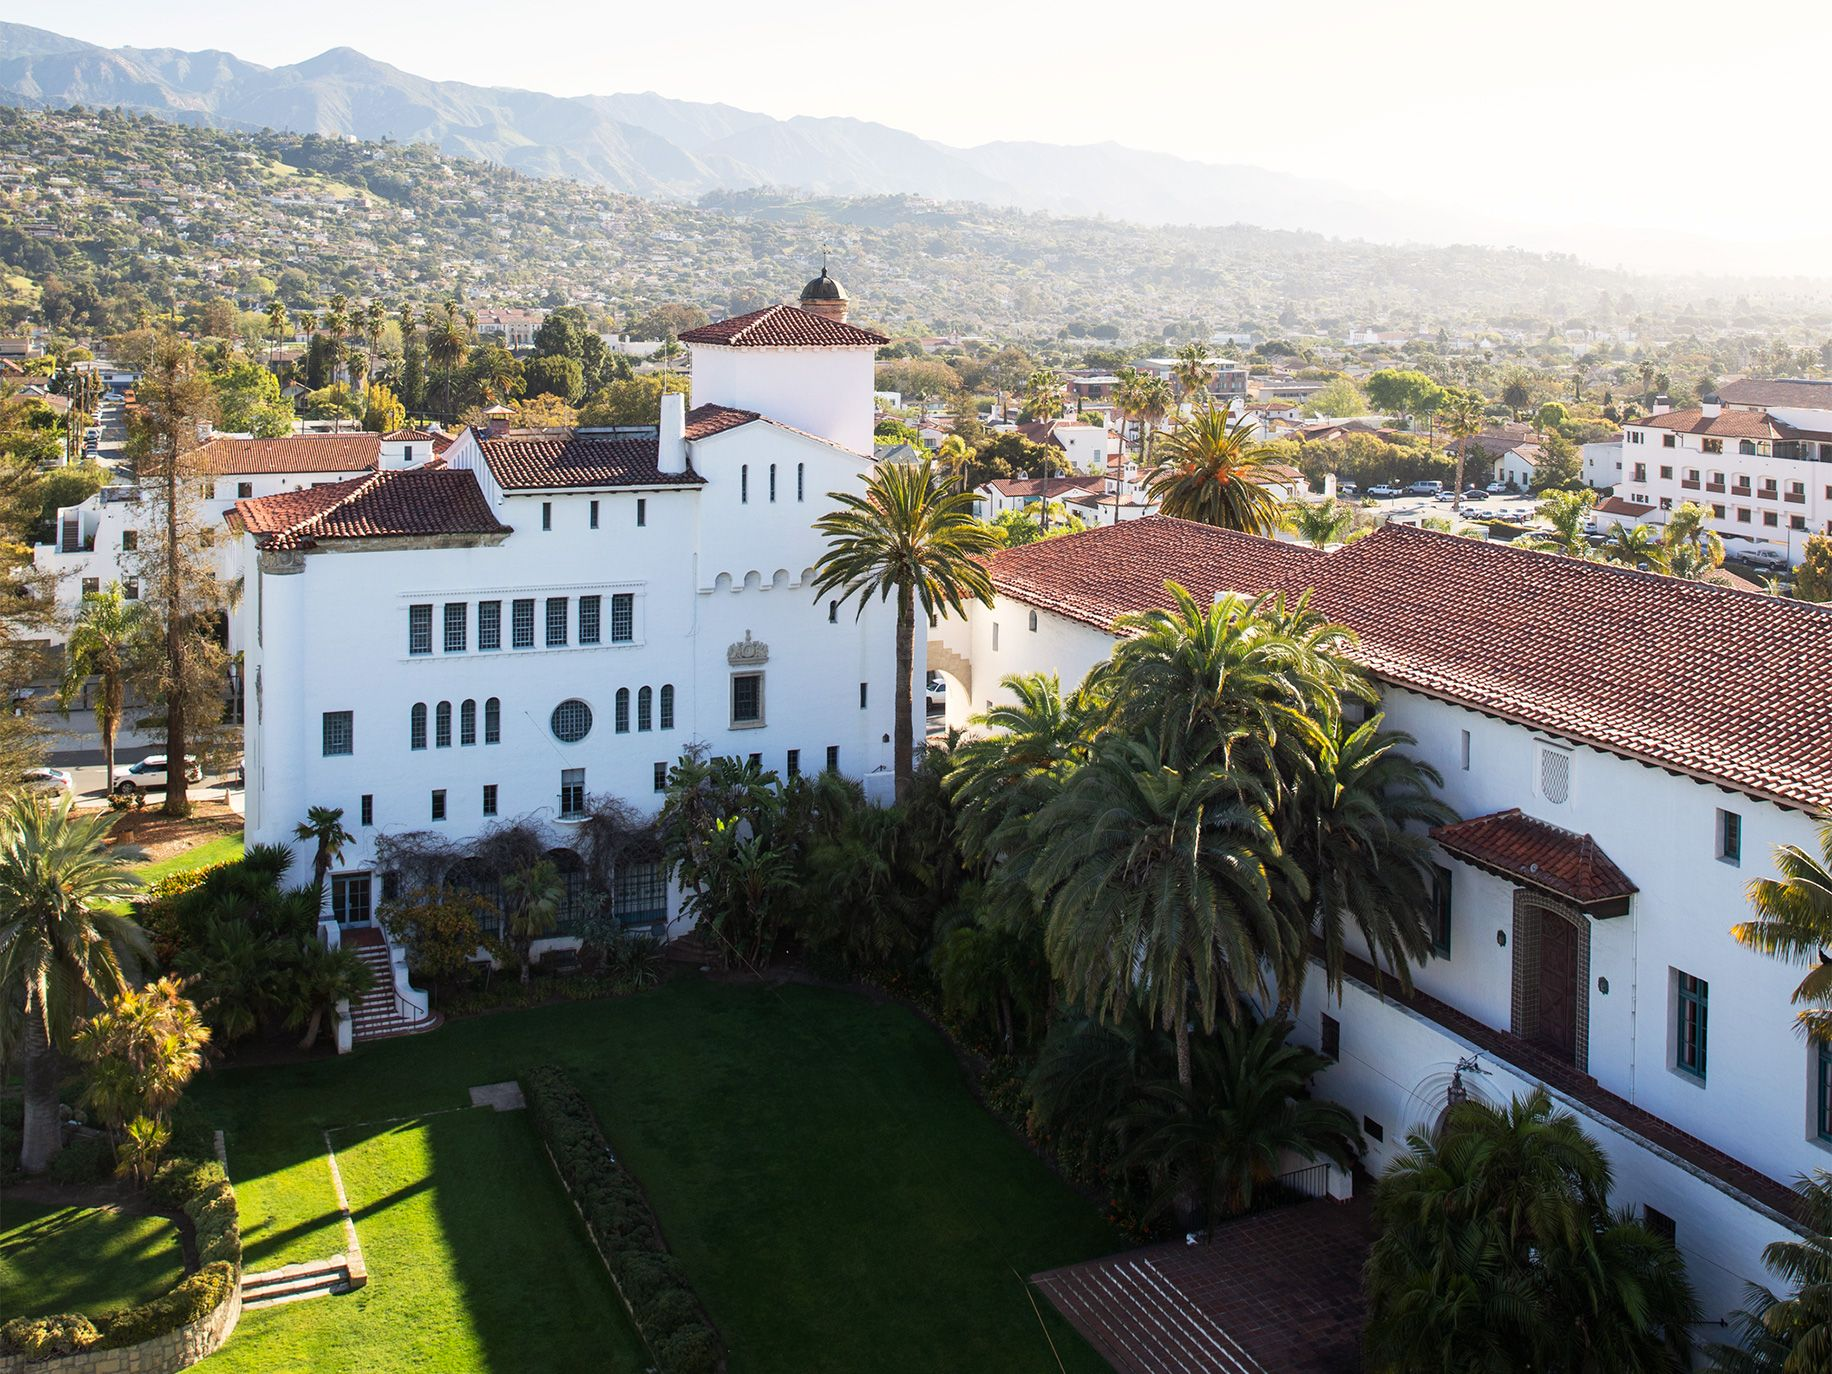 Much of Santa Barbara's architecture honors its Spanish colonial past.